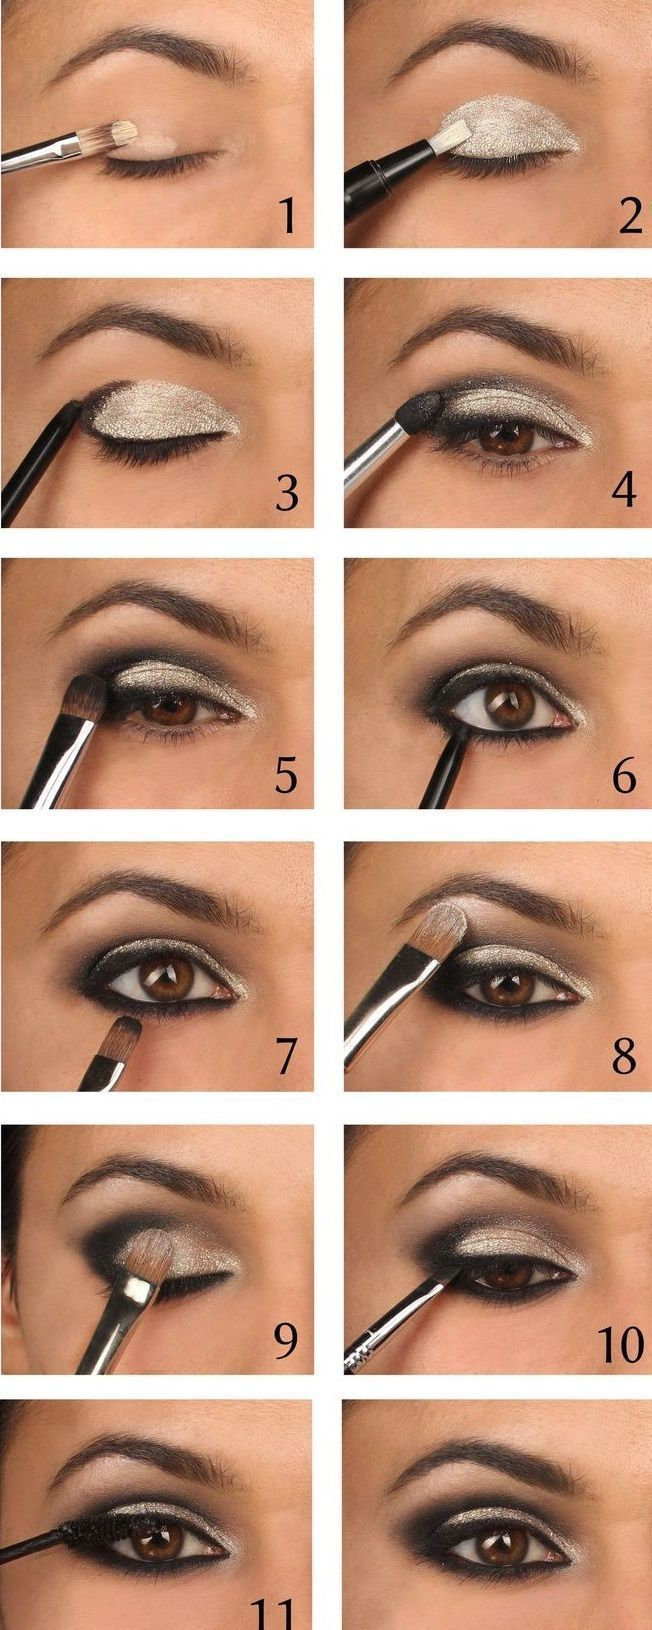 Photo of 15 tutoriales simples de maquillaje paso a paso para principiantes # Belleza